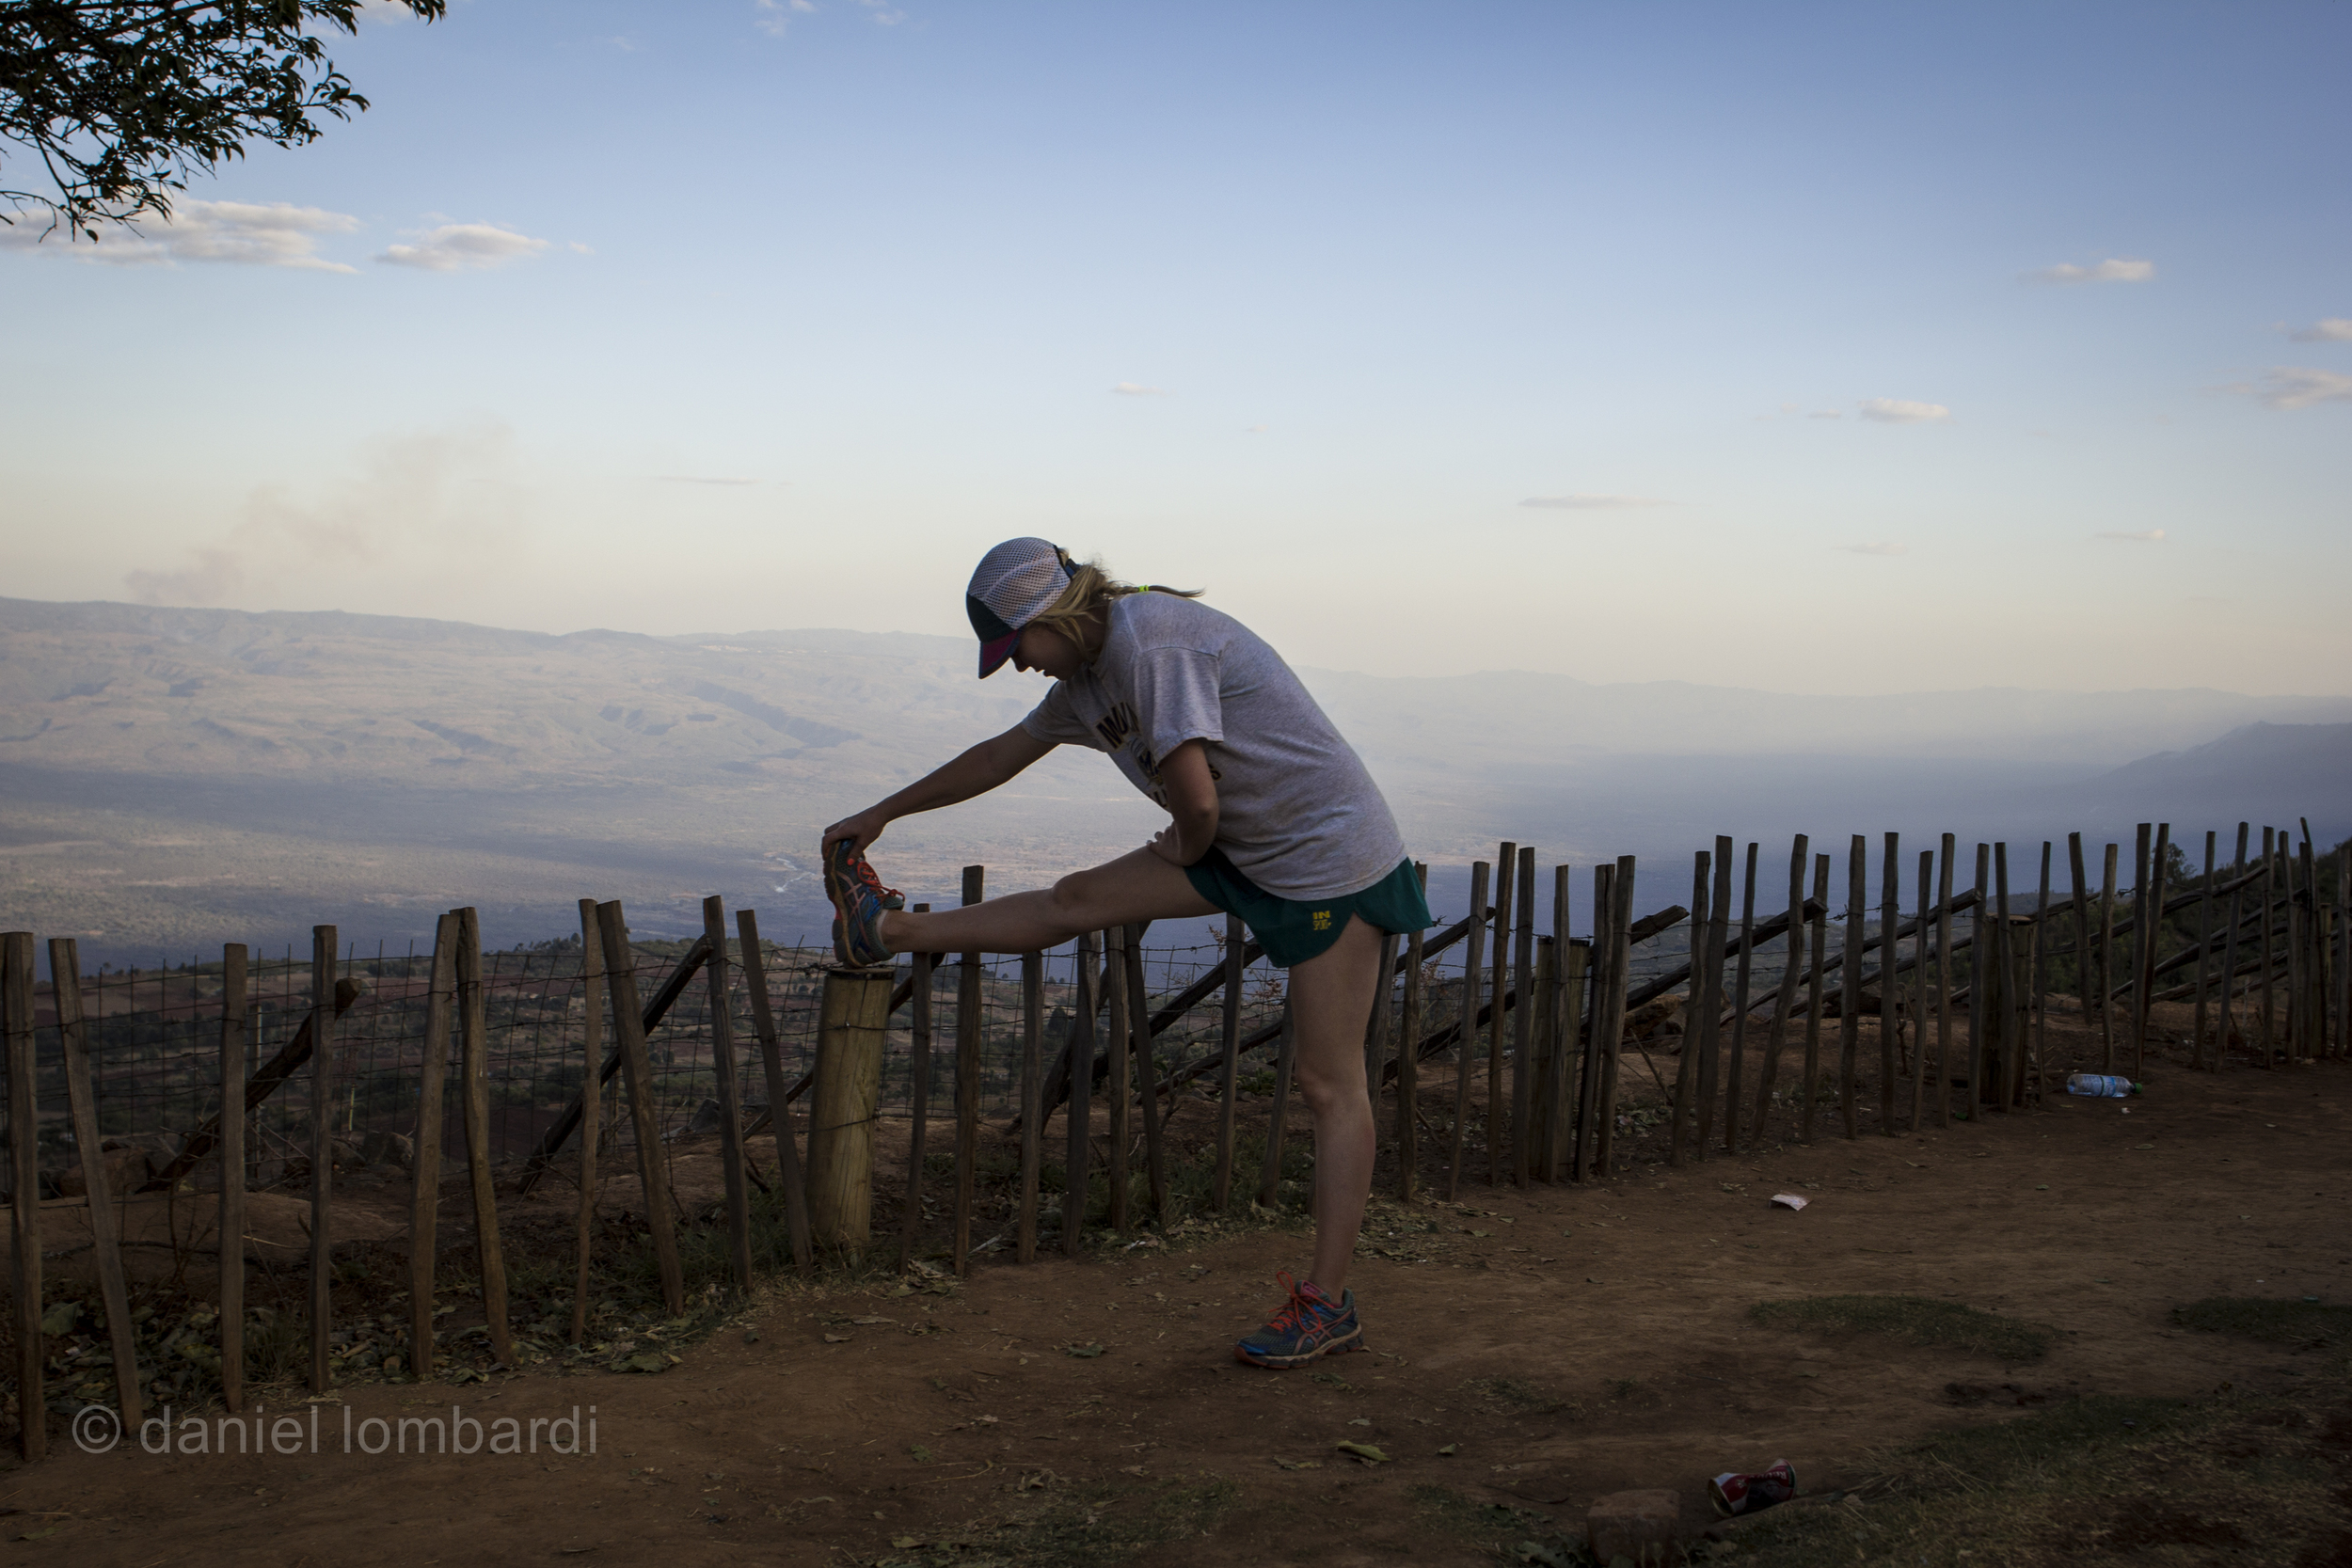 In Iten, Kenya stretching at the edge of town can feel like stretching on the edge of the world. There are some real cool runs around the valley edge with amazing views if you're willing to explore a little bit. This image was taken just a short jog away from the Jambo hotel.